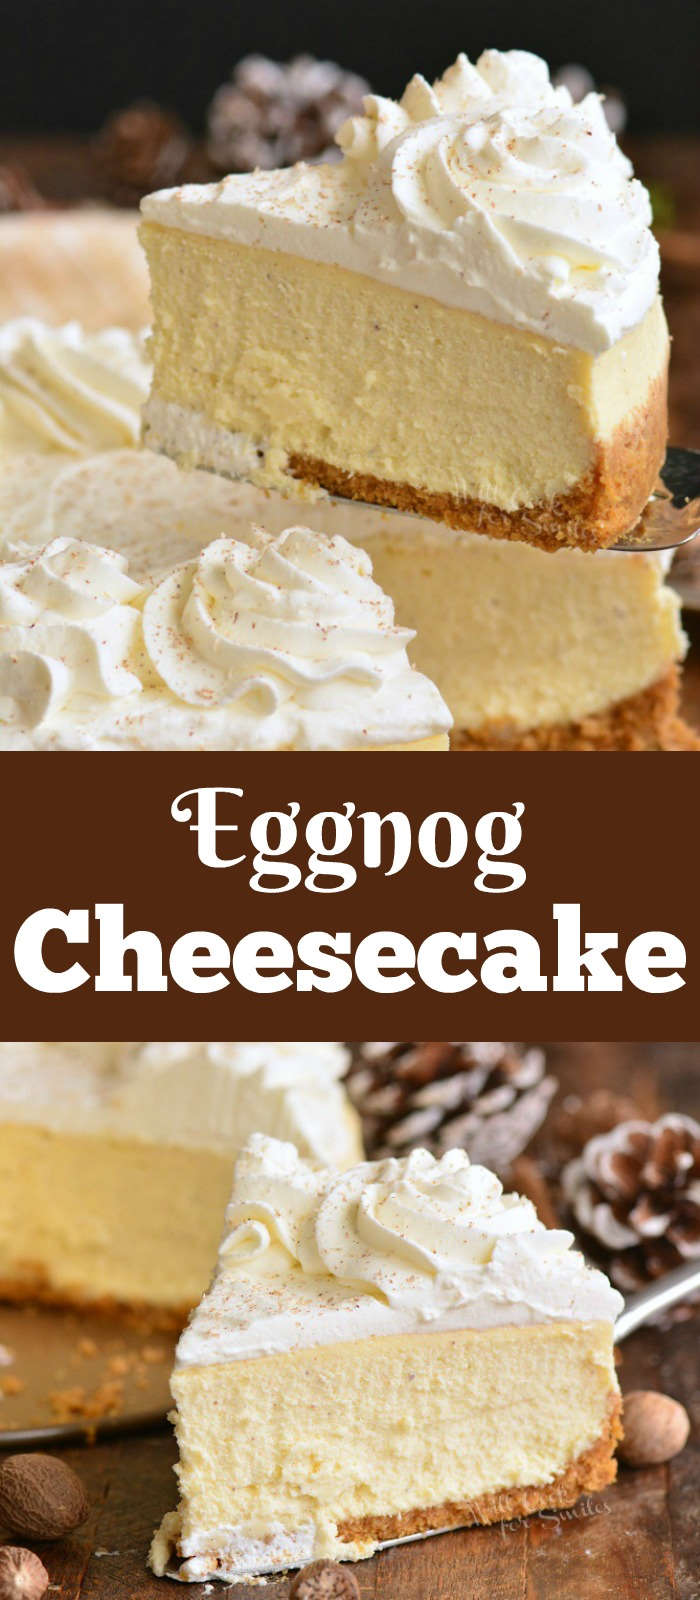 eggnog cheesecake collage